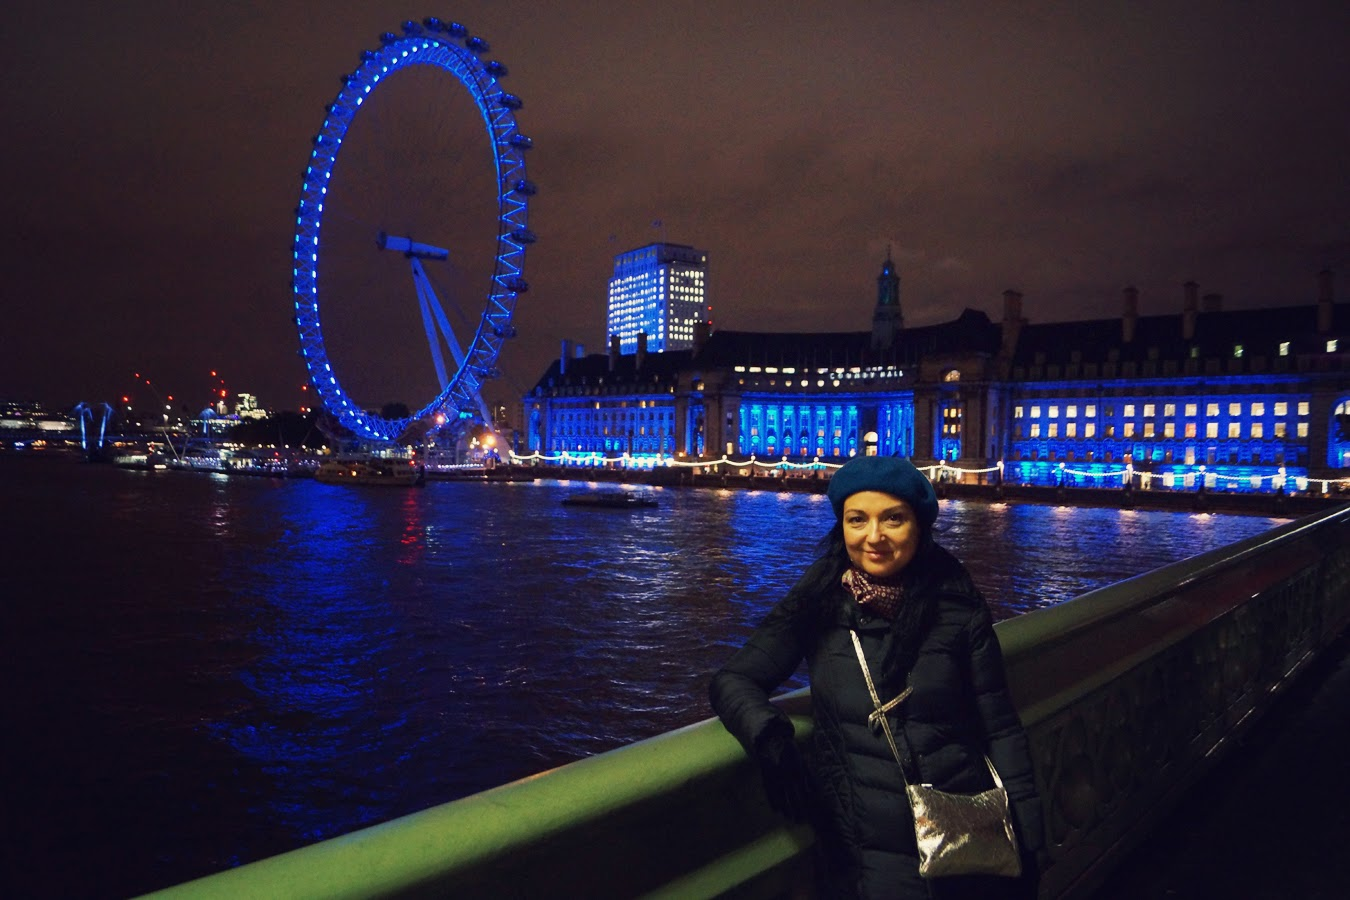 The+London+Eye